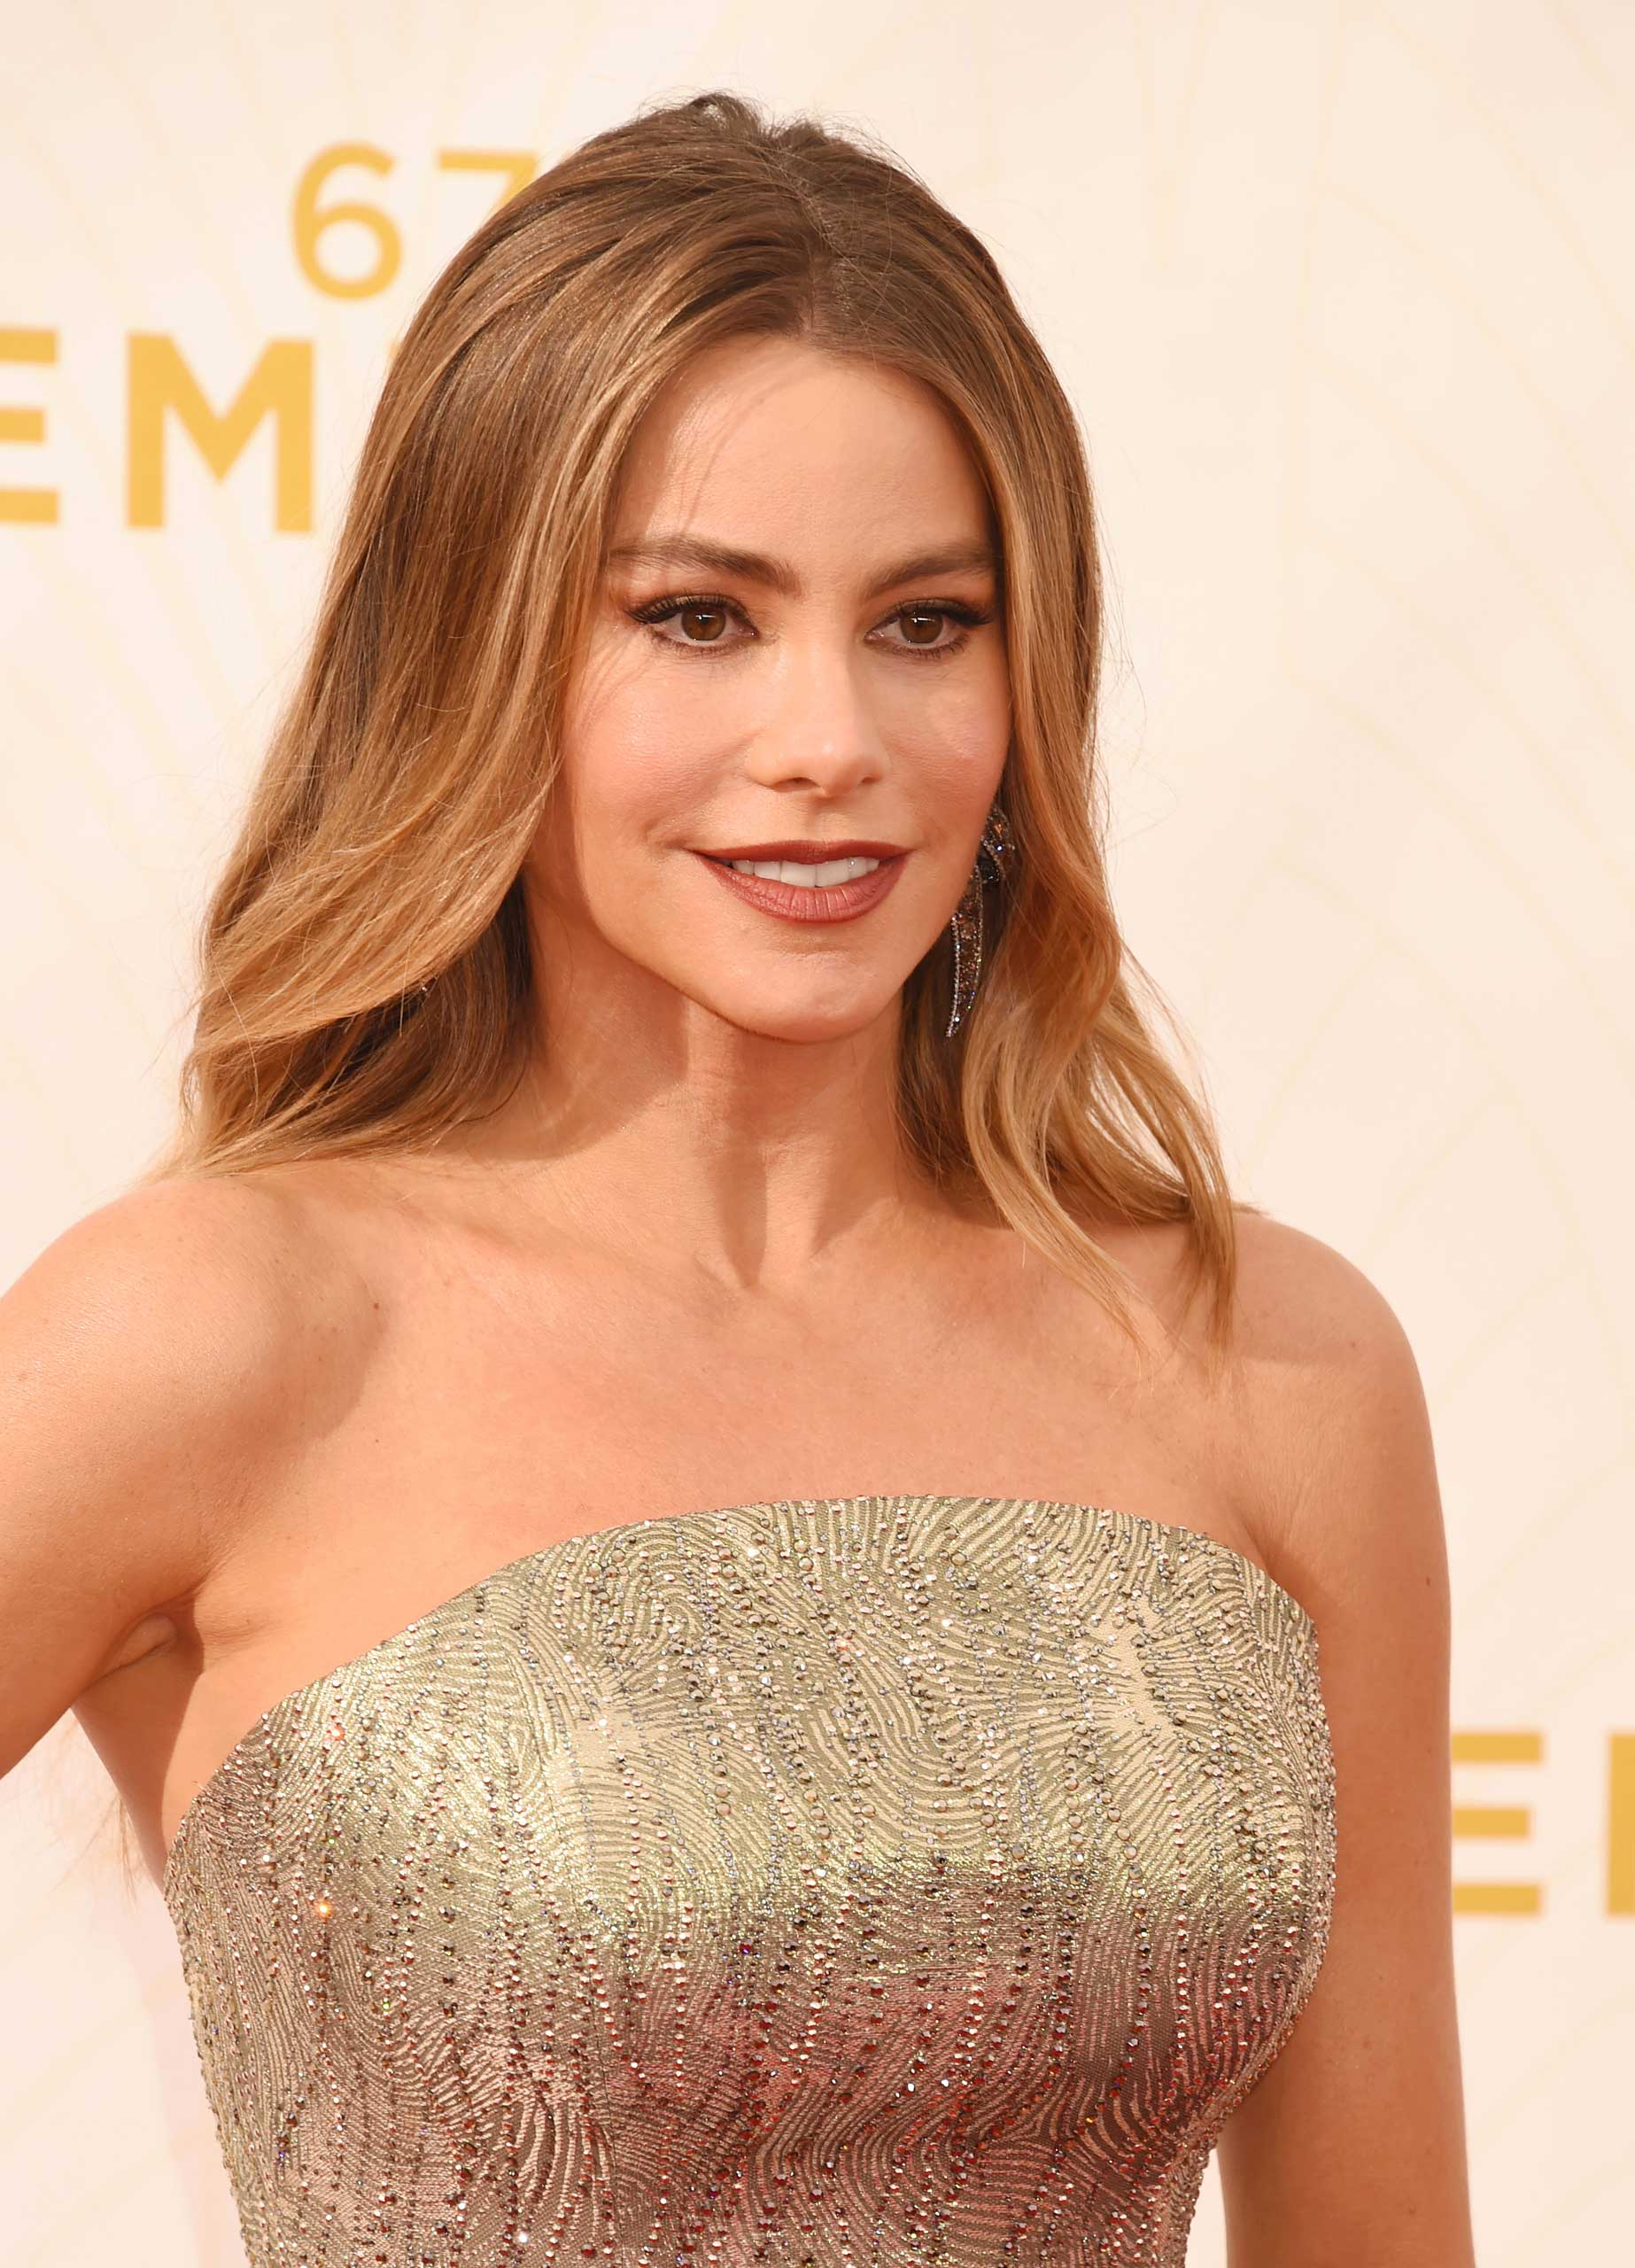 Sofia Vergara at the Emmy Awards in Los Angeles, on Sept. 20, 2015.